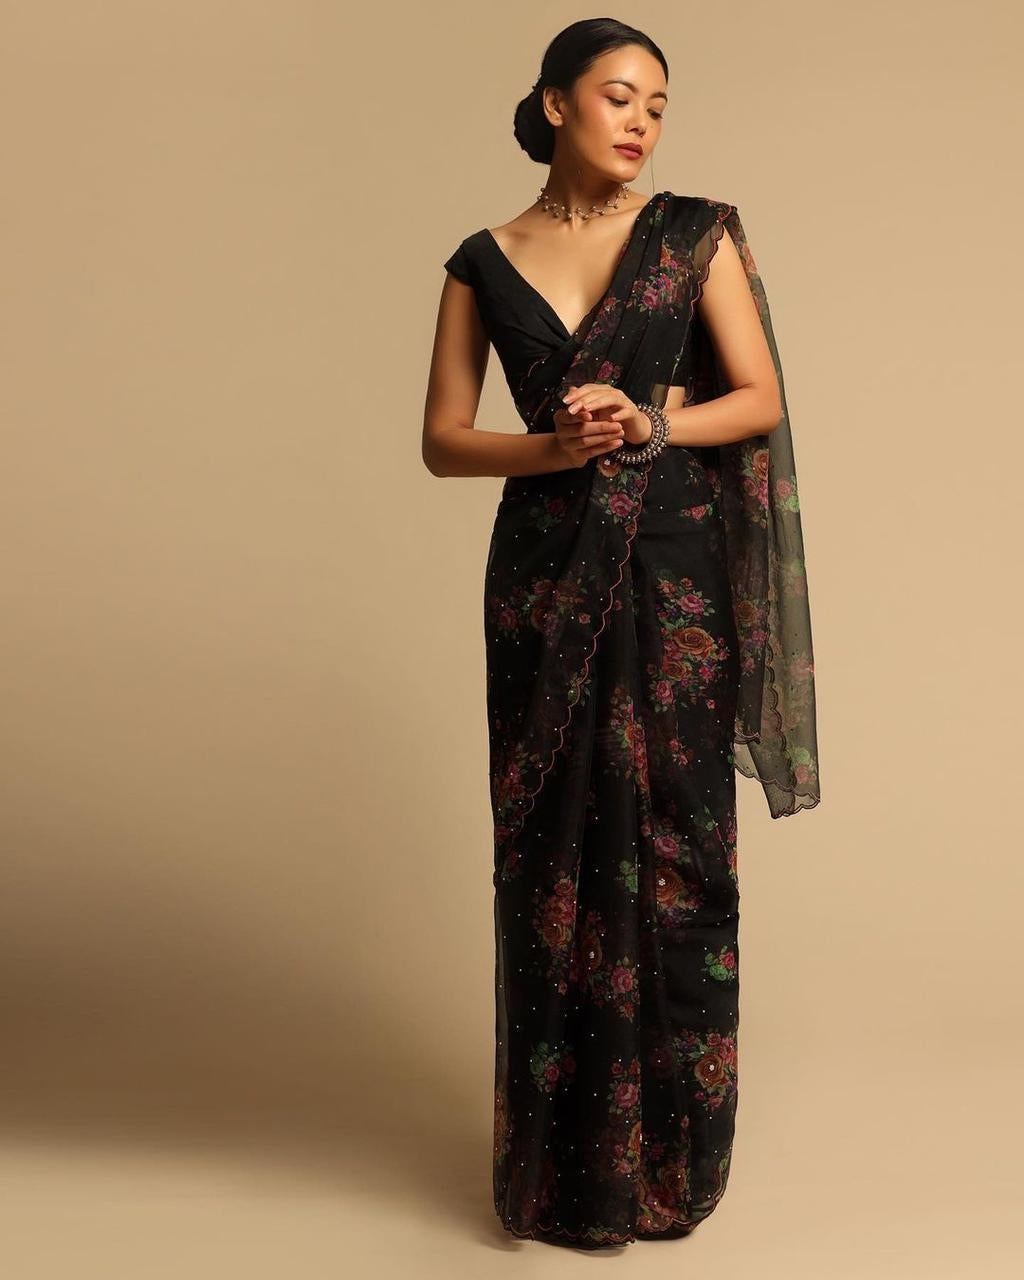 Black Organza Silk Saree With Floral Hand Printed Work Online Shopping